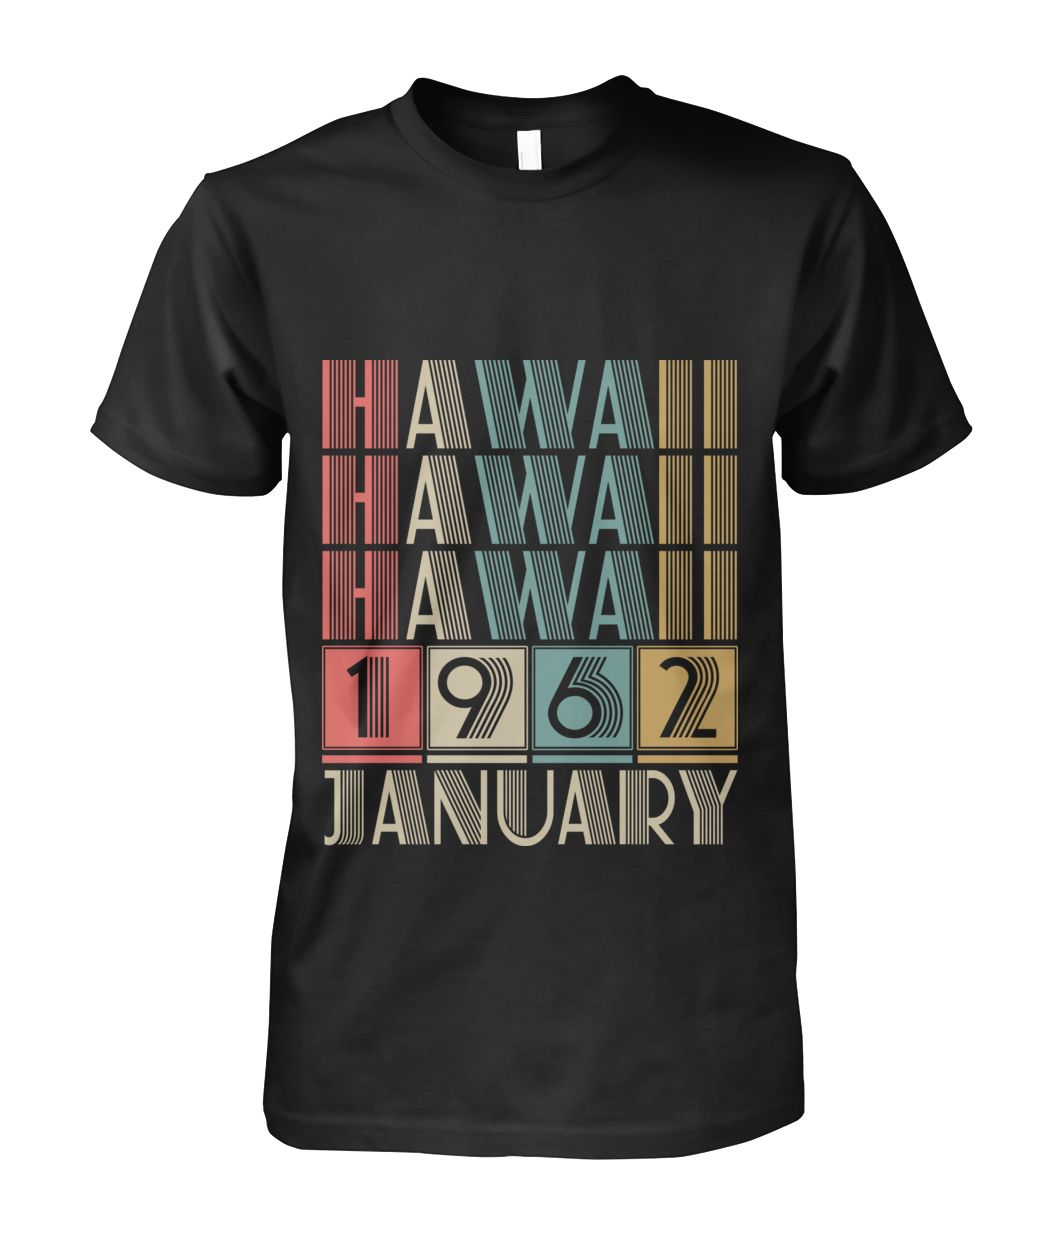 Born in Hawaii in January 1962 t shirt